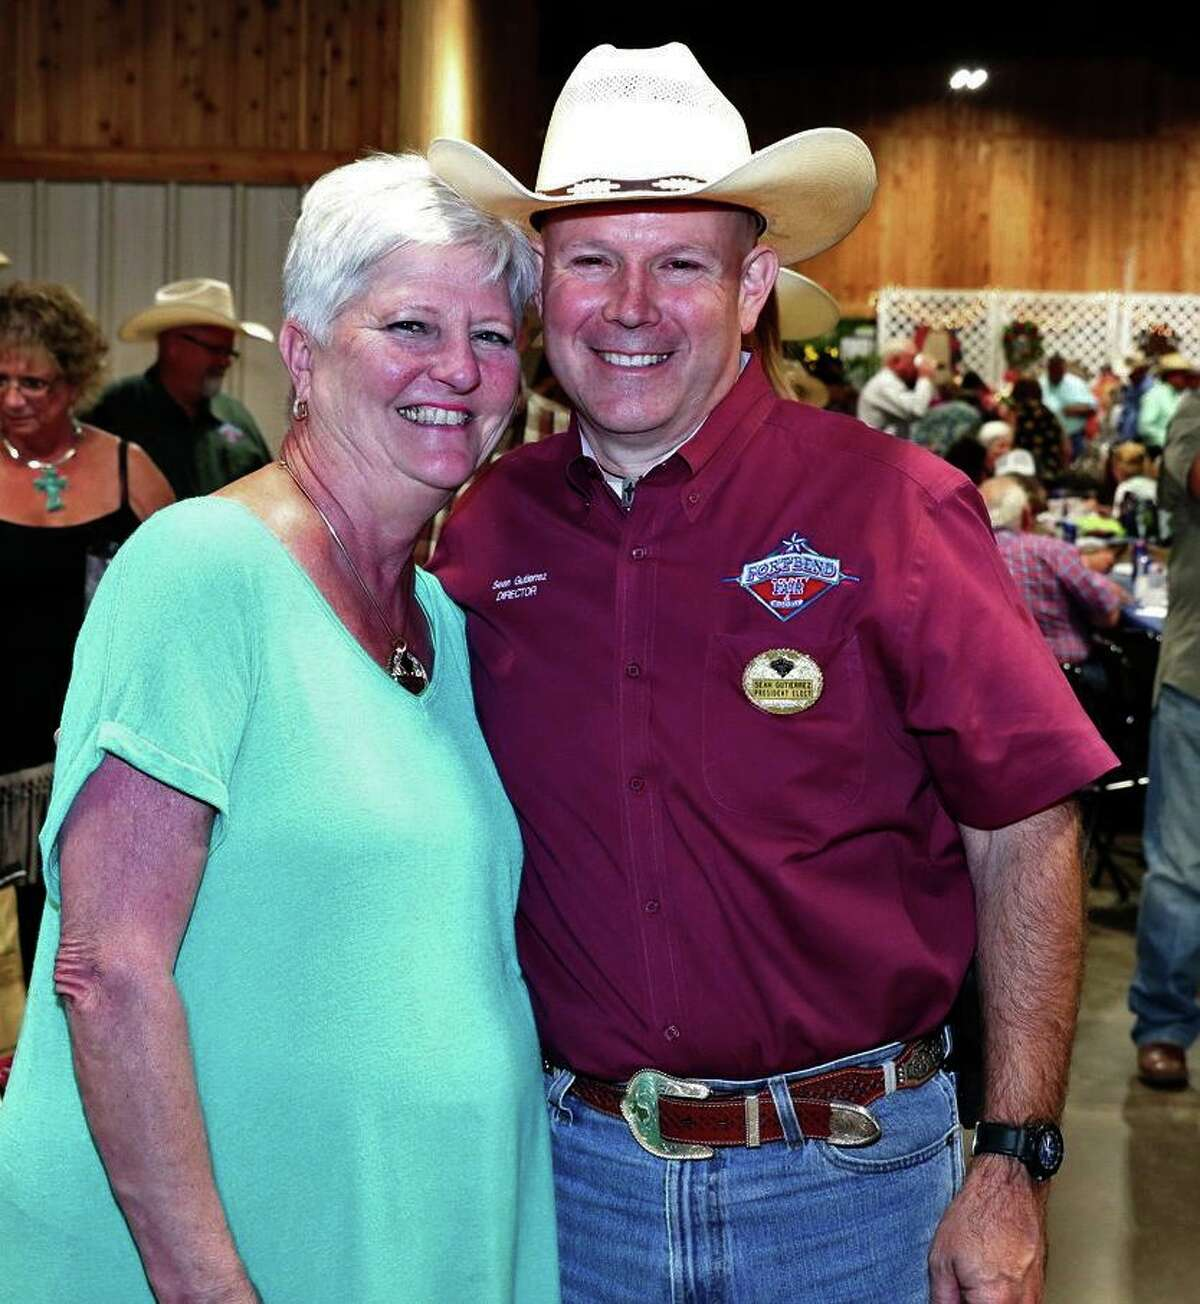 Sean Gutierrez, a 27-year volunteer with the Fort Bend County Fair and Rodeo, was recently elected 2020 Fair President.